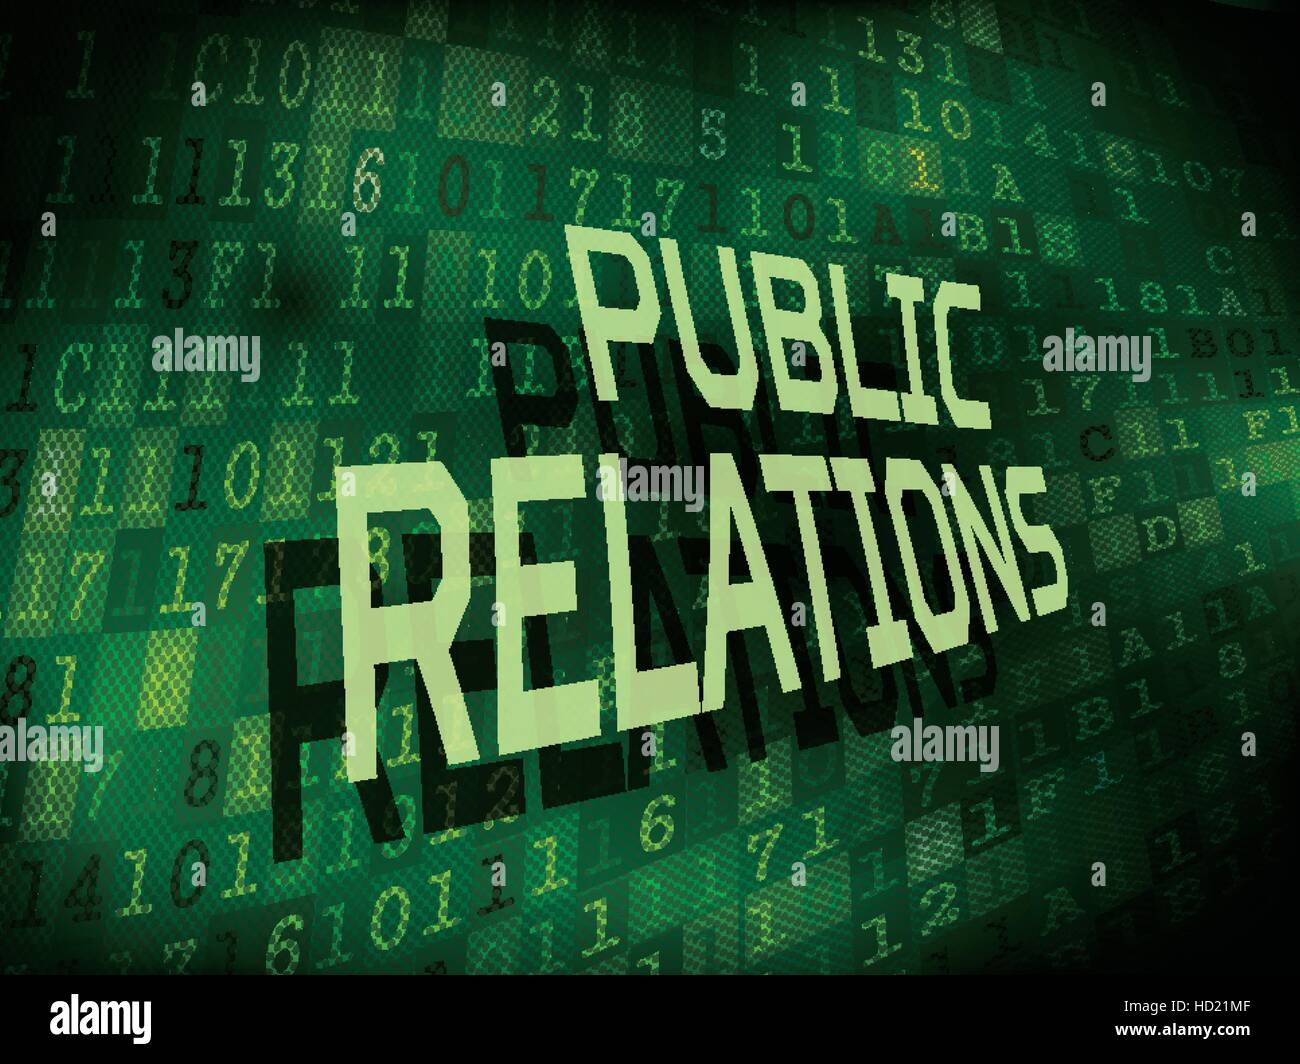 public relations words isolated on internet digital background - Stock Image